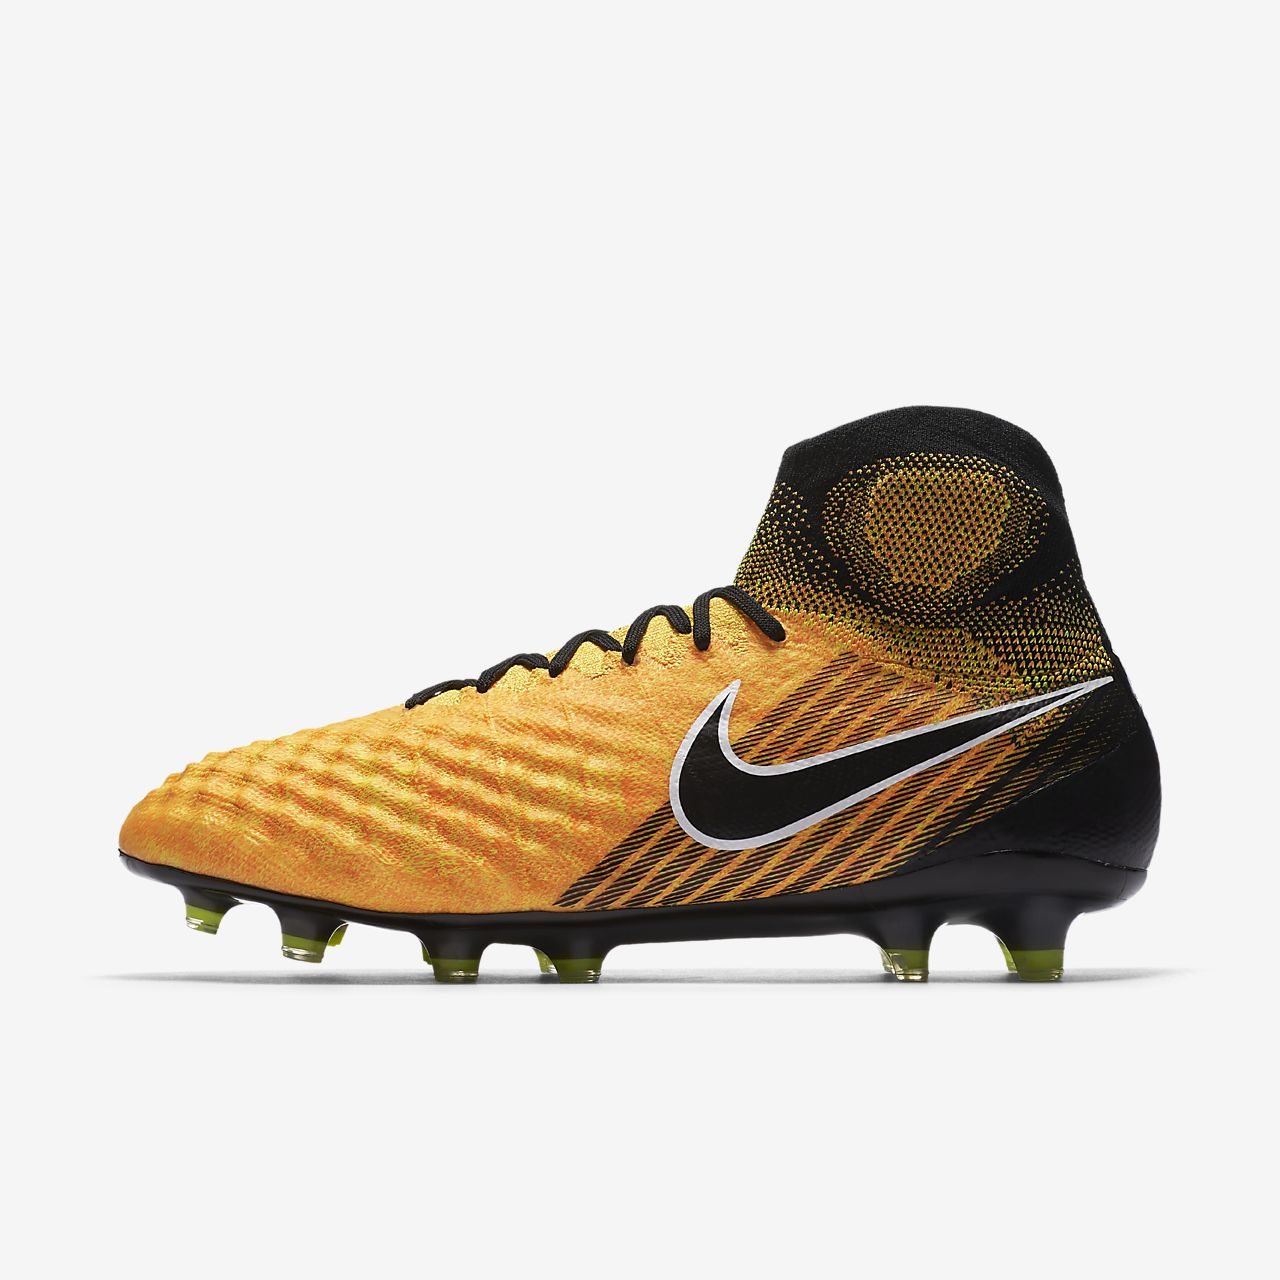 nike magista obra ii firmground soccer cleat nikecom